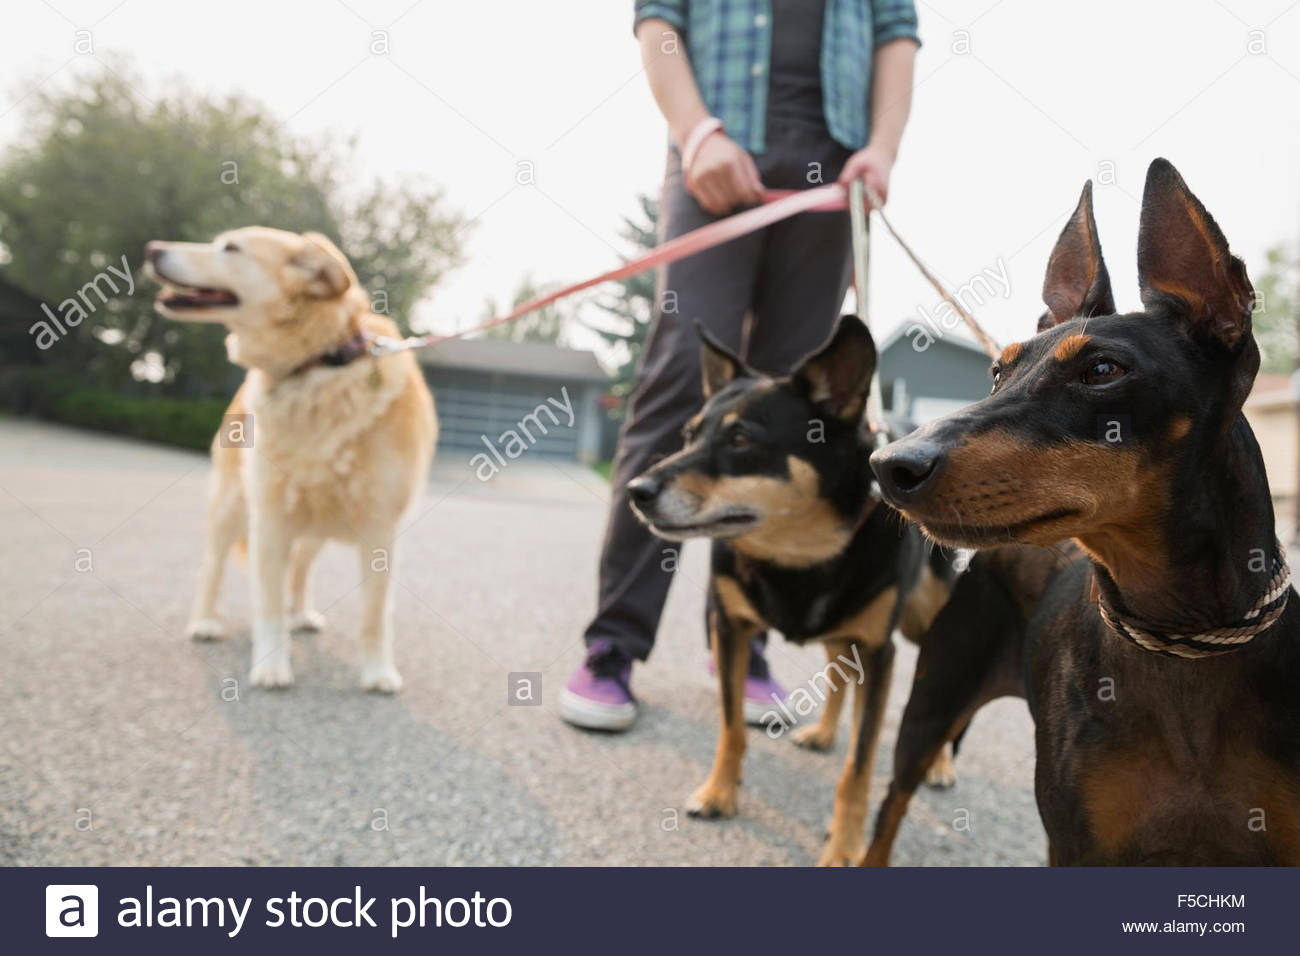 Man walking dogs on leashes - Stock Image